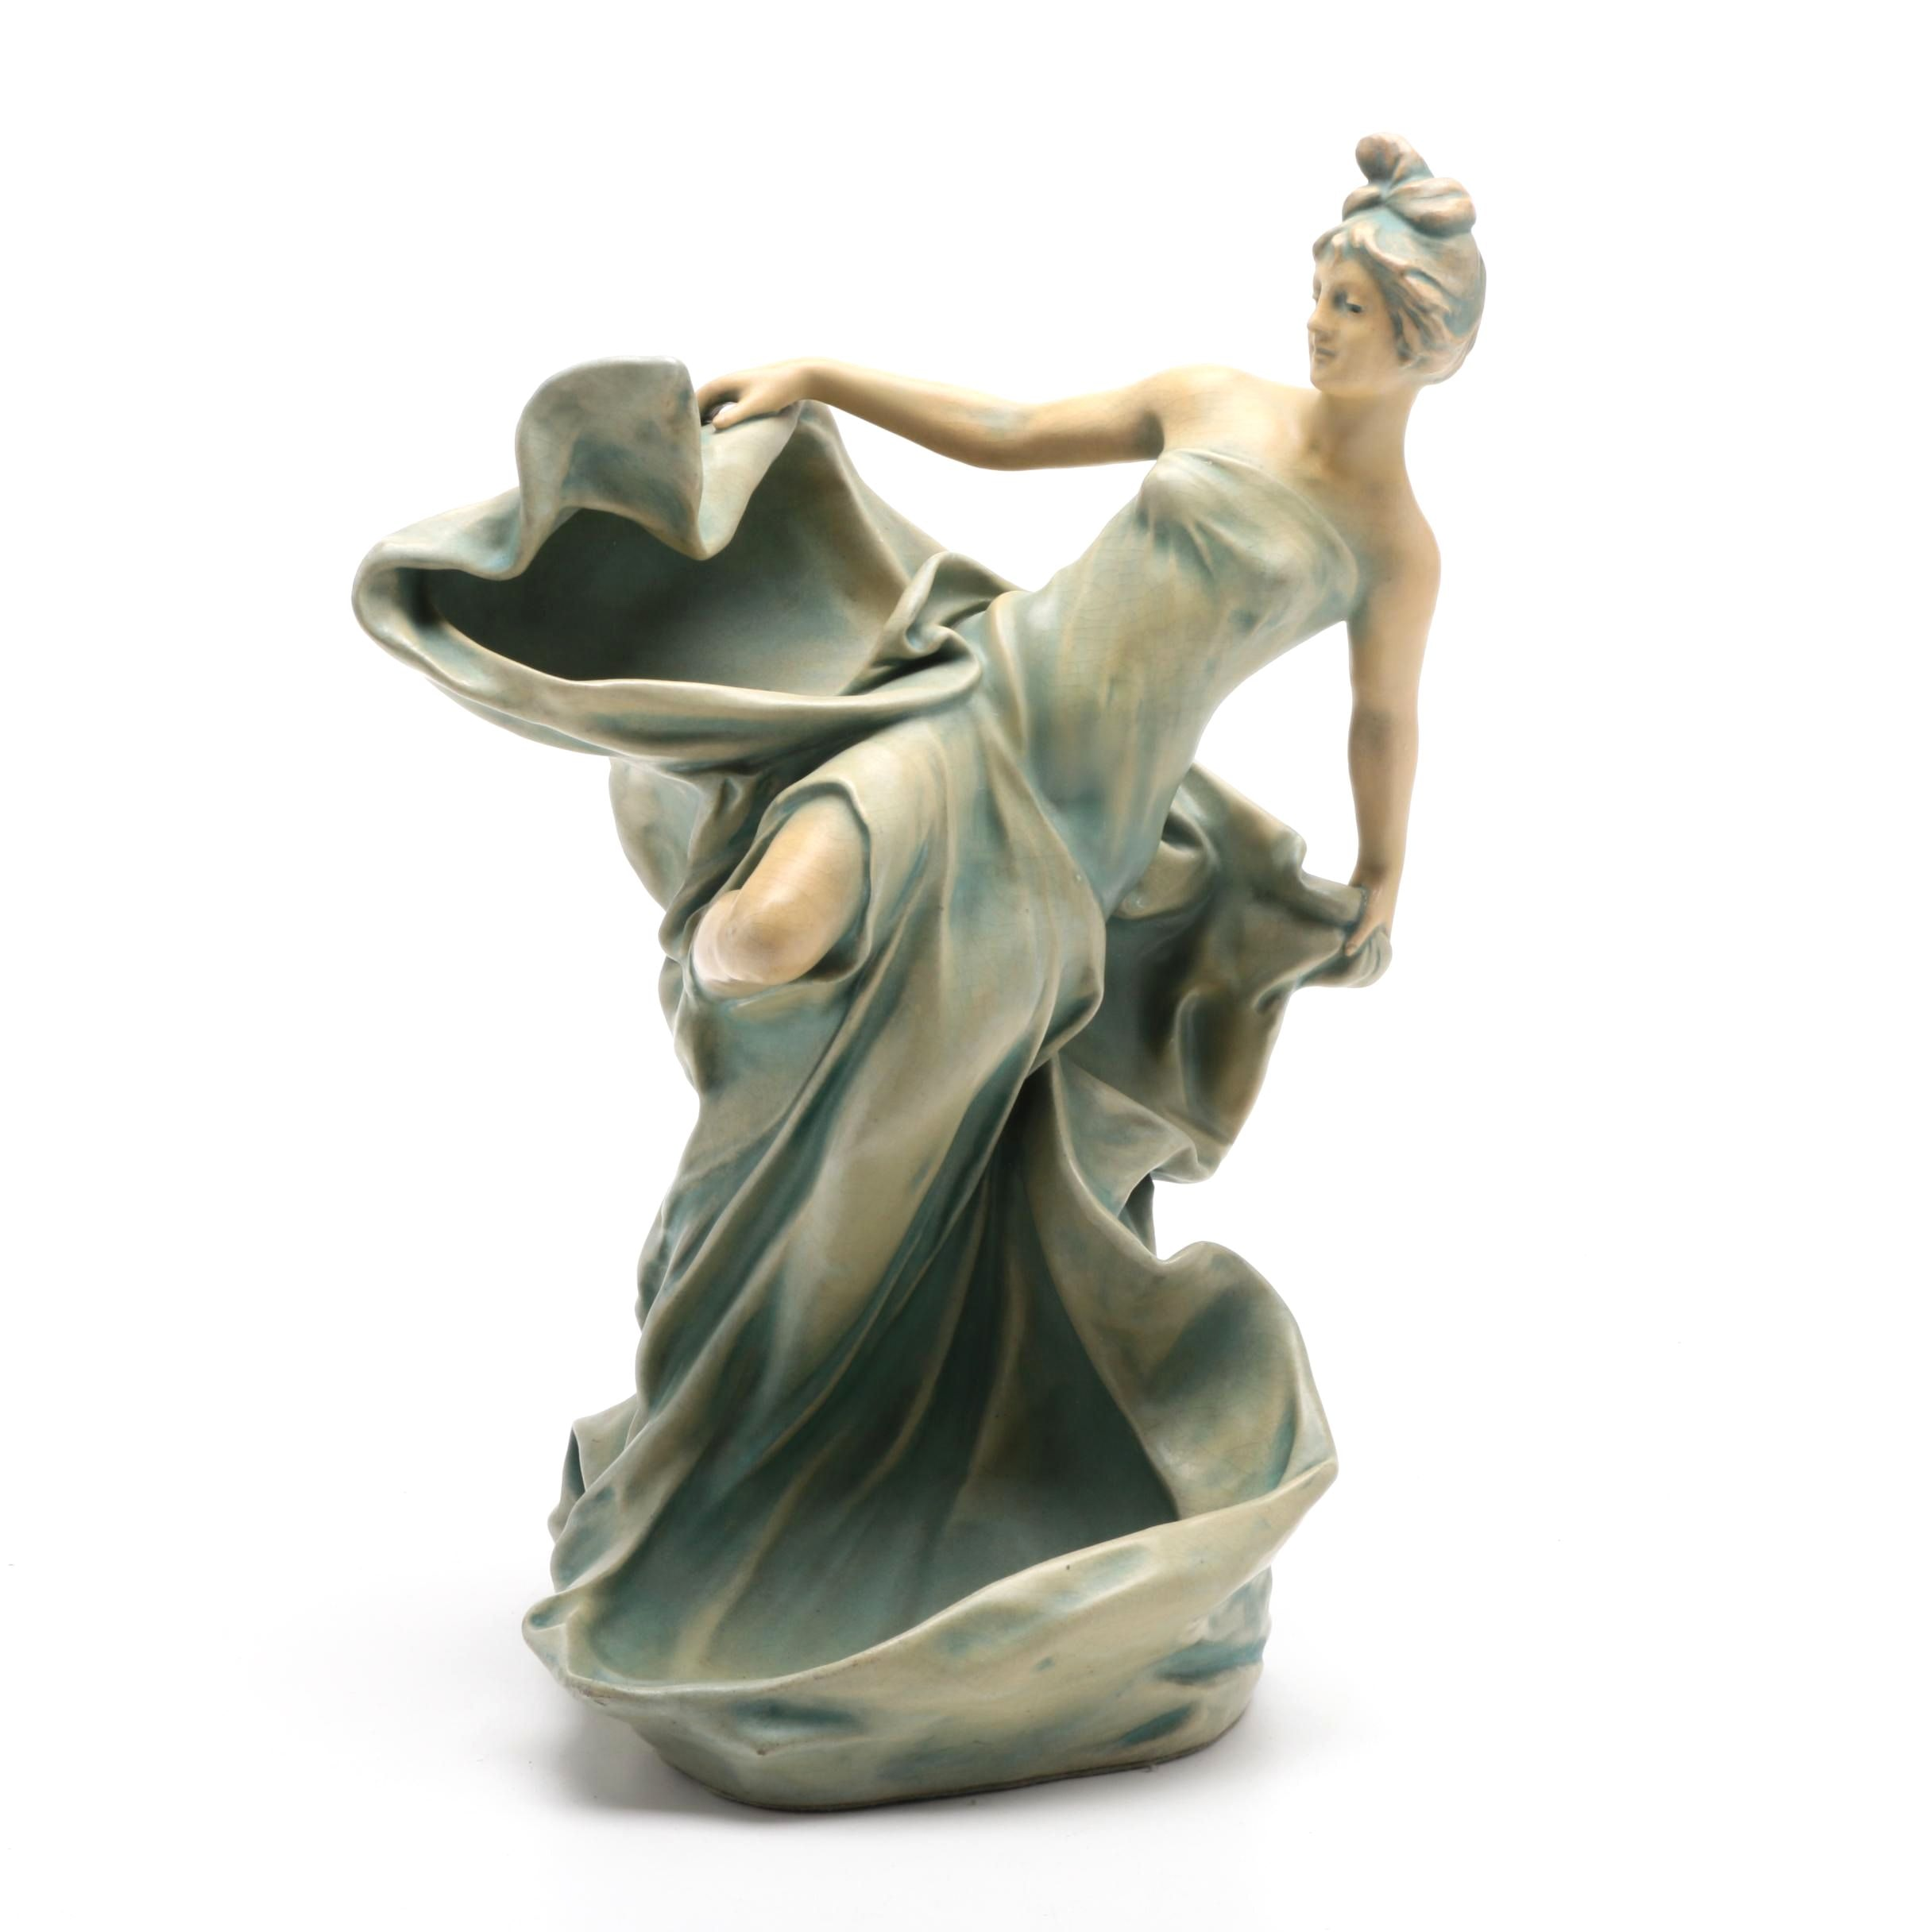 Bernard Bloch Art Nouveau Figure of Woman in Draped Garment